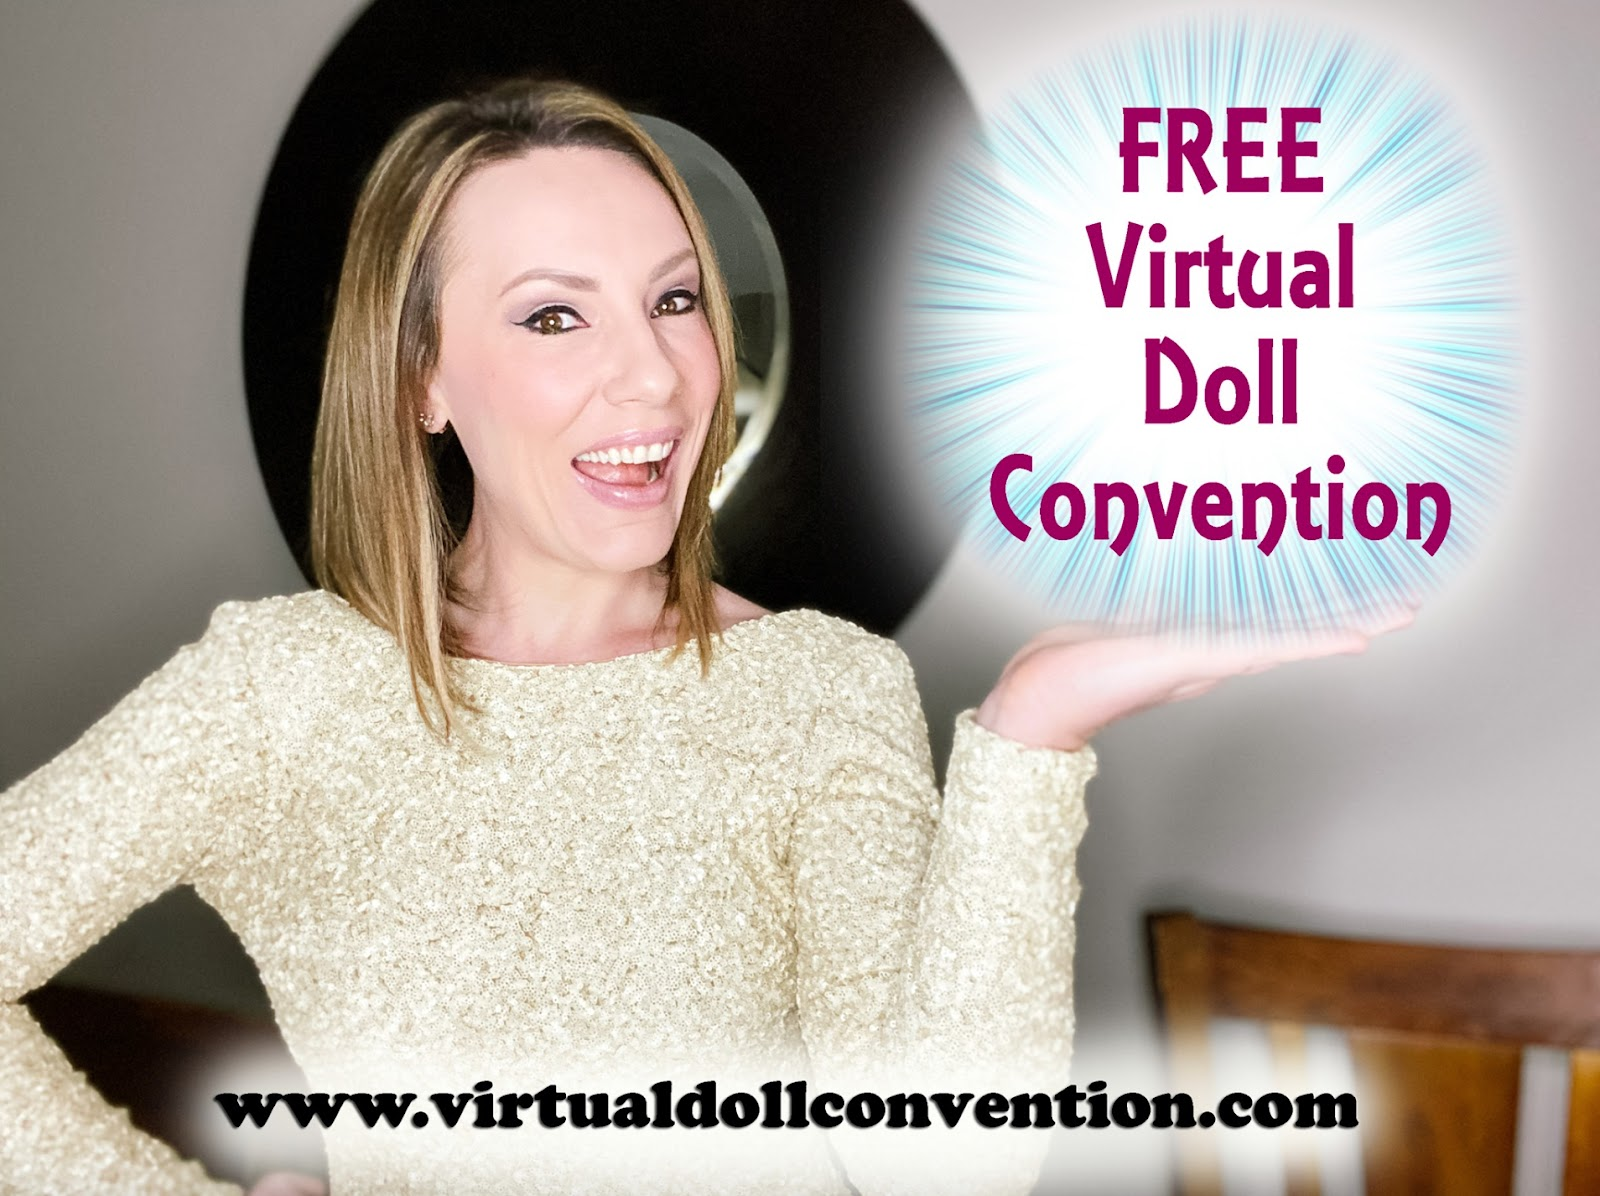 Photo Courtesy of the Virtual Doll Convention